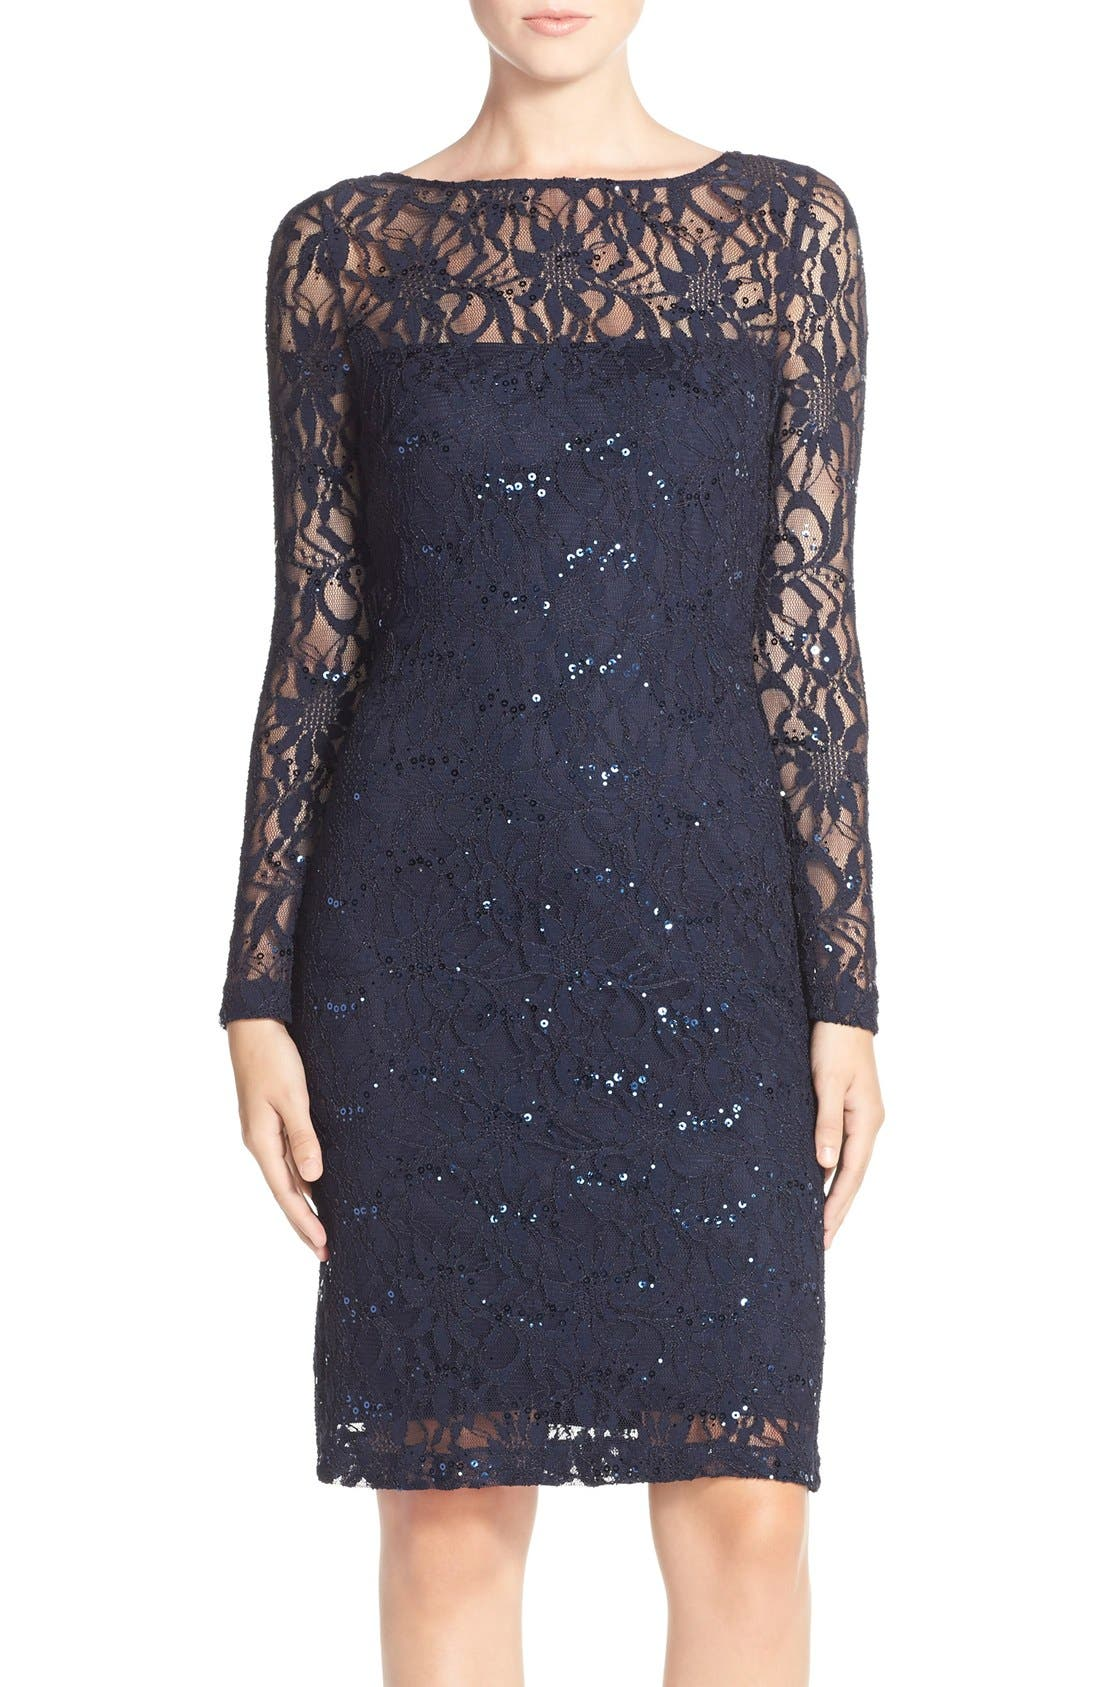 Alternate Image 1 Selected - JS Collections Illusion Lace Dress